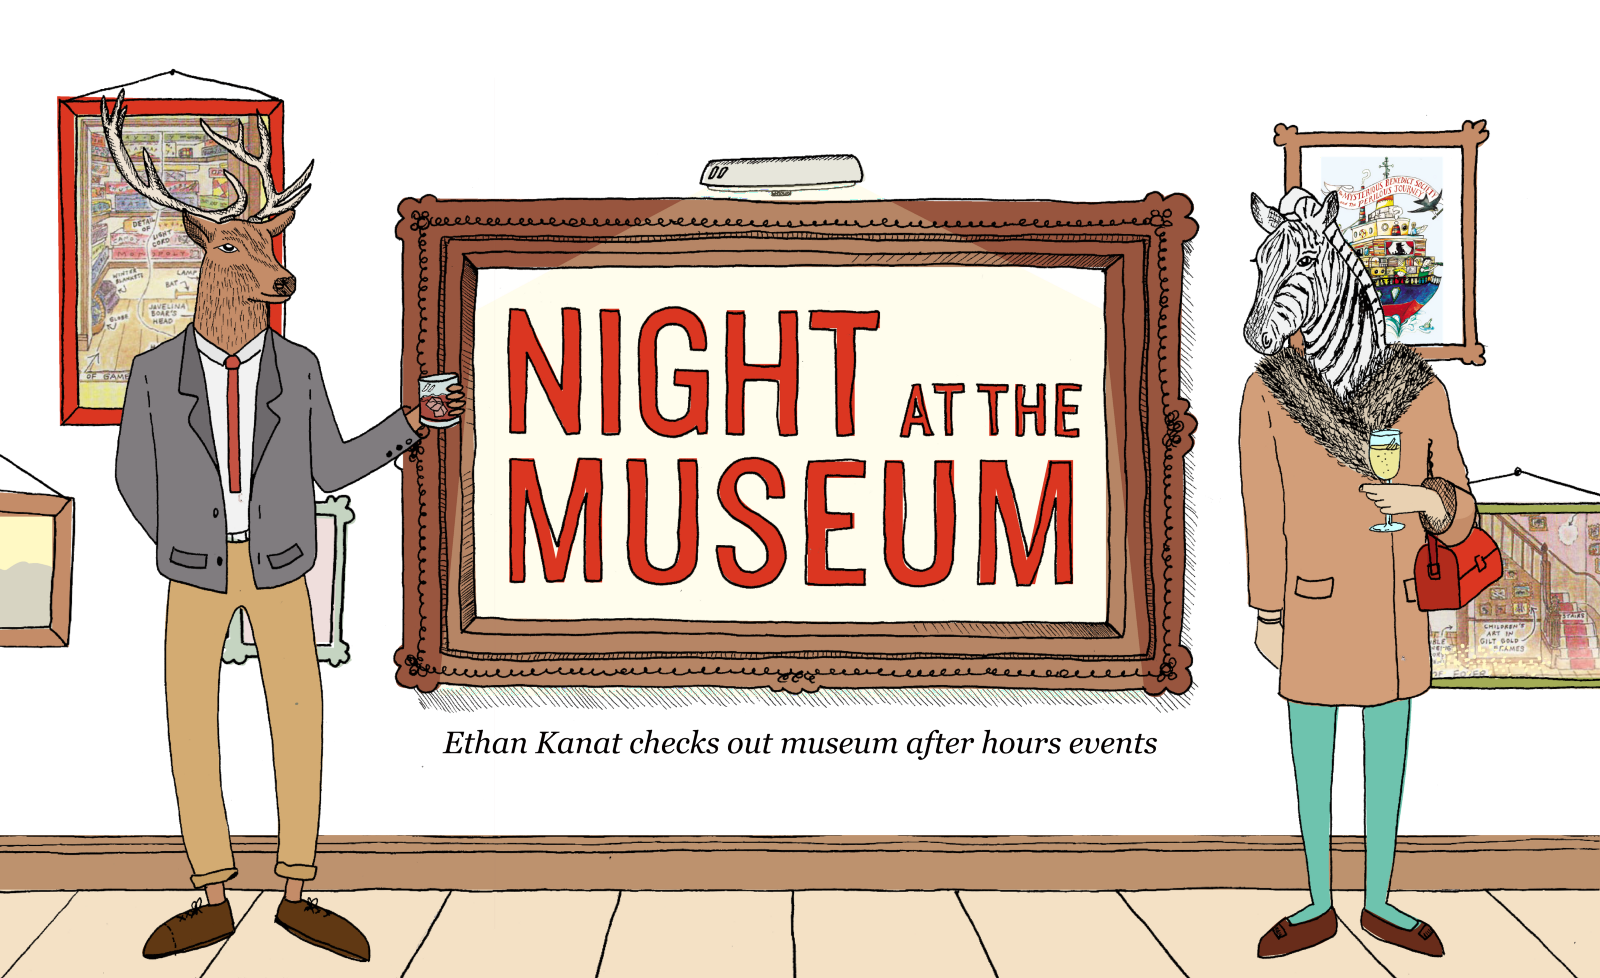 Trap house clipart vector library download Night at the Museum — The Bold Italic — San Francisco vector library download